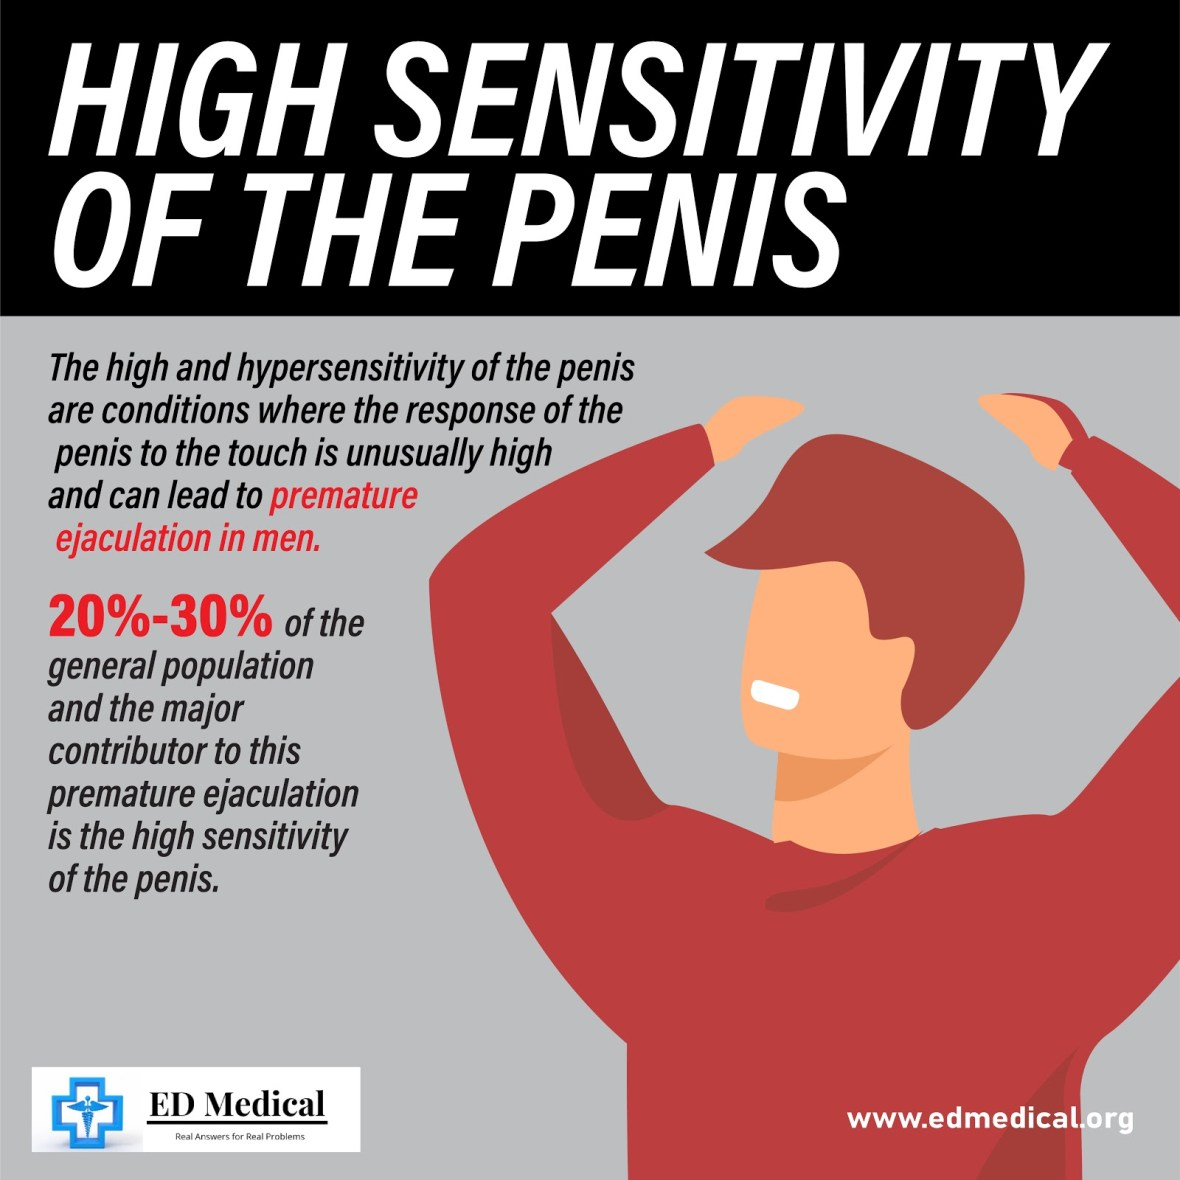 High sensitivity of the penis